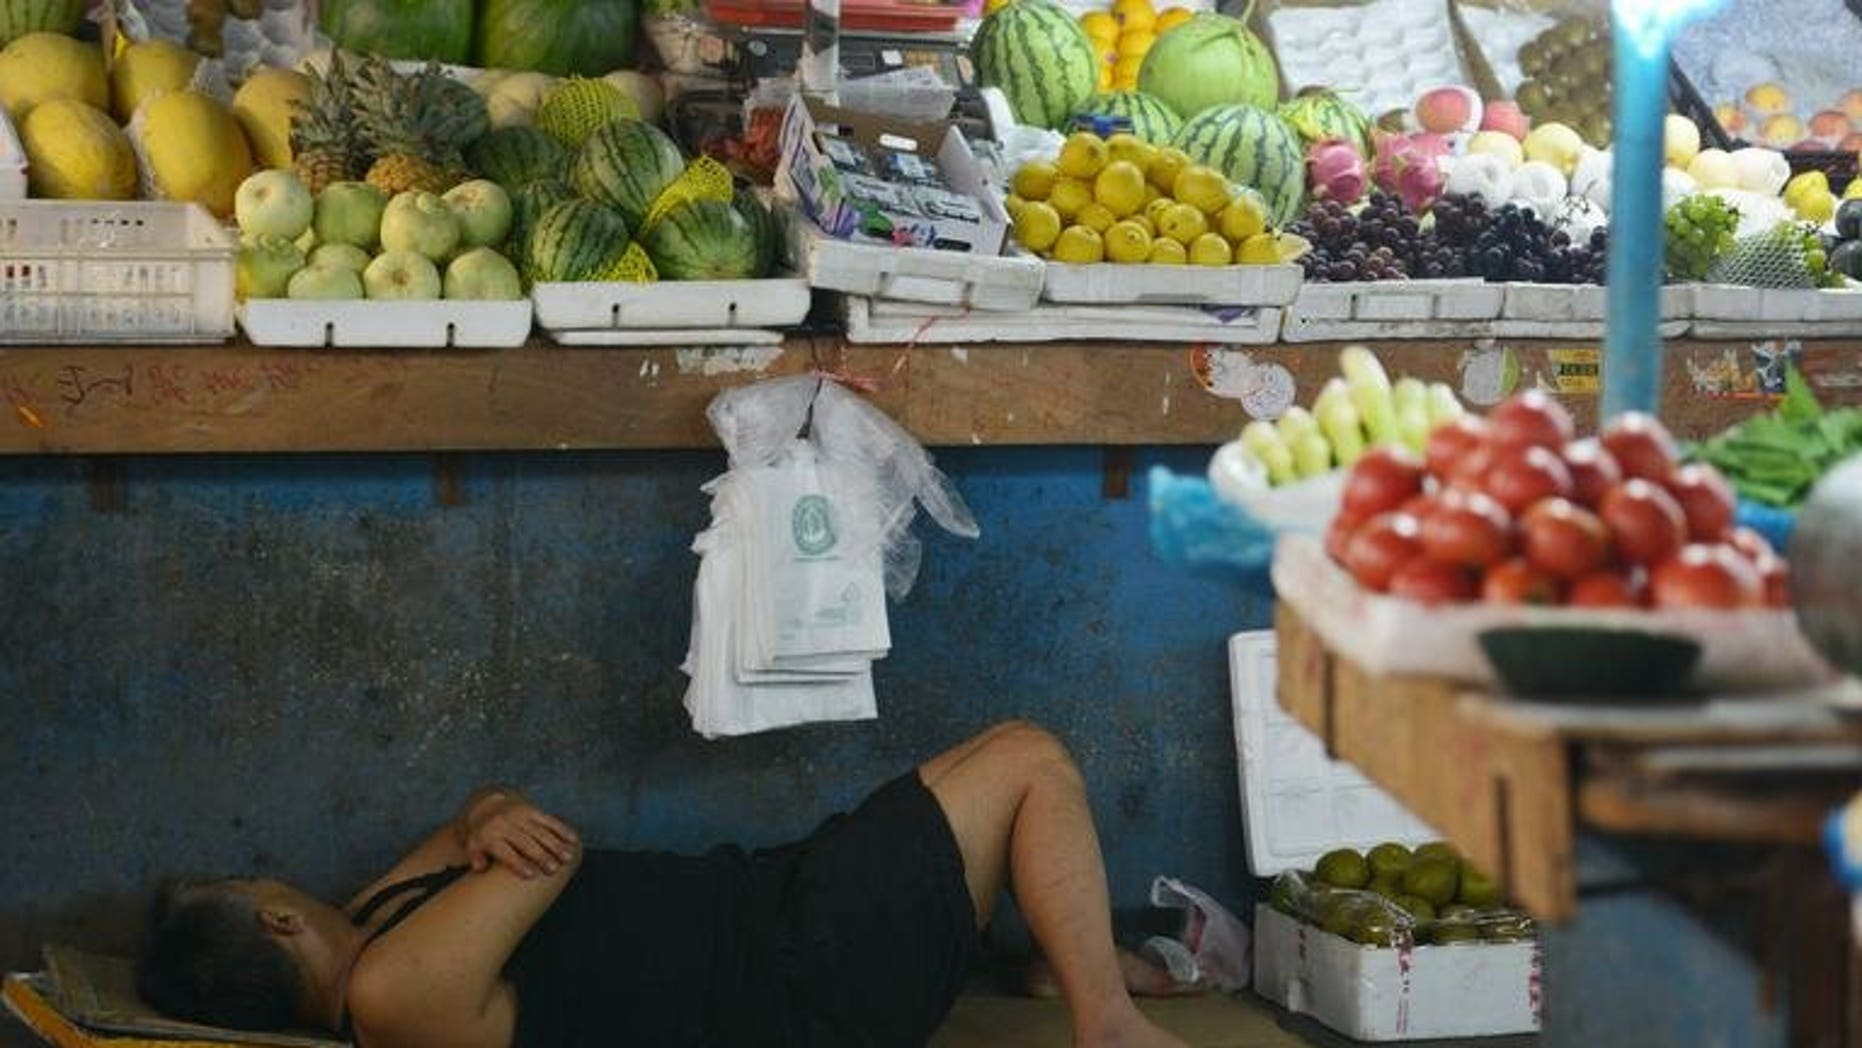 A vendor takes a rest in a market in Shanghai on July 15, 2013. A Chinese vendor's plan to fake his own death at the hands of social enforcers failed when he could not play dead long enough in scorching heat, state media reported Monday.